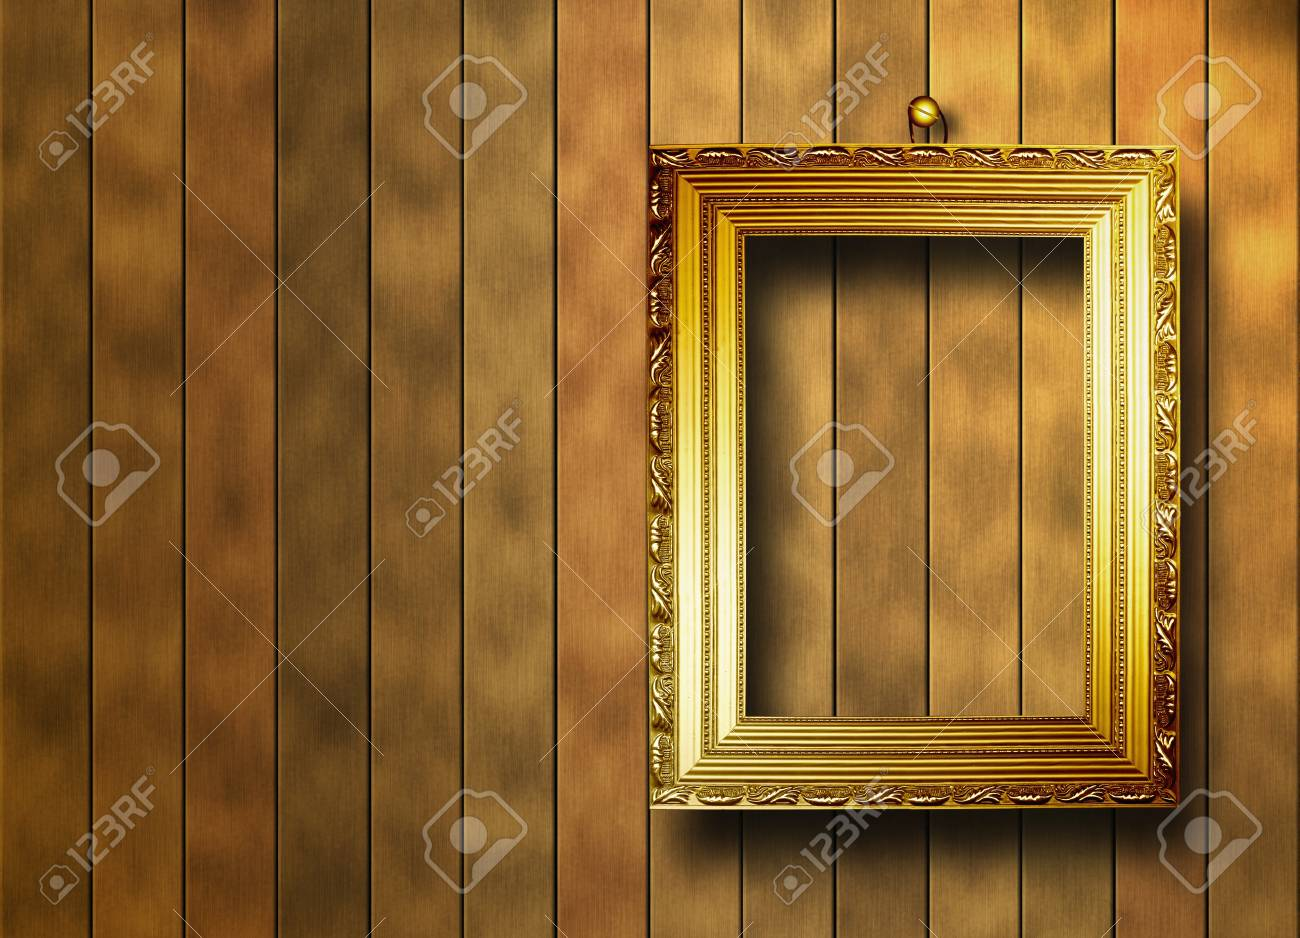 grunge  interior with frame in style baroque Stock Photo - 7249614